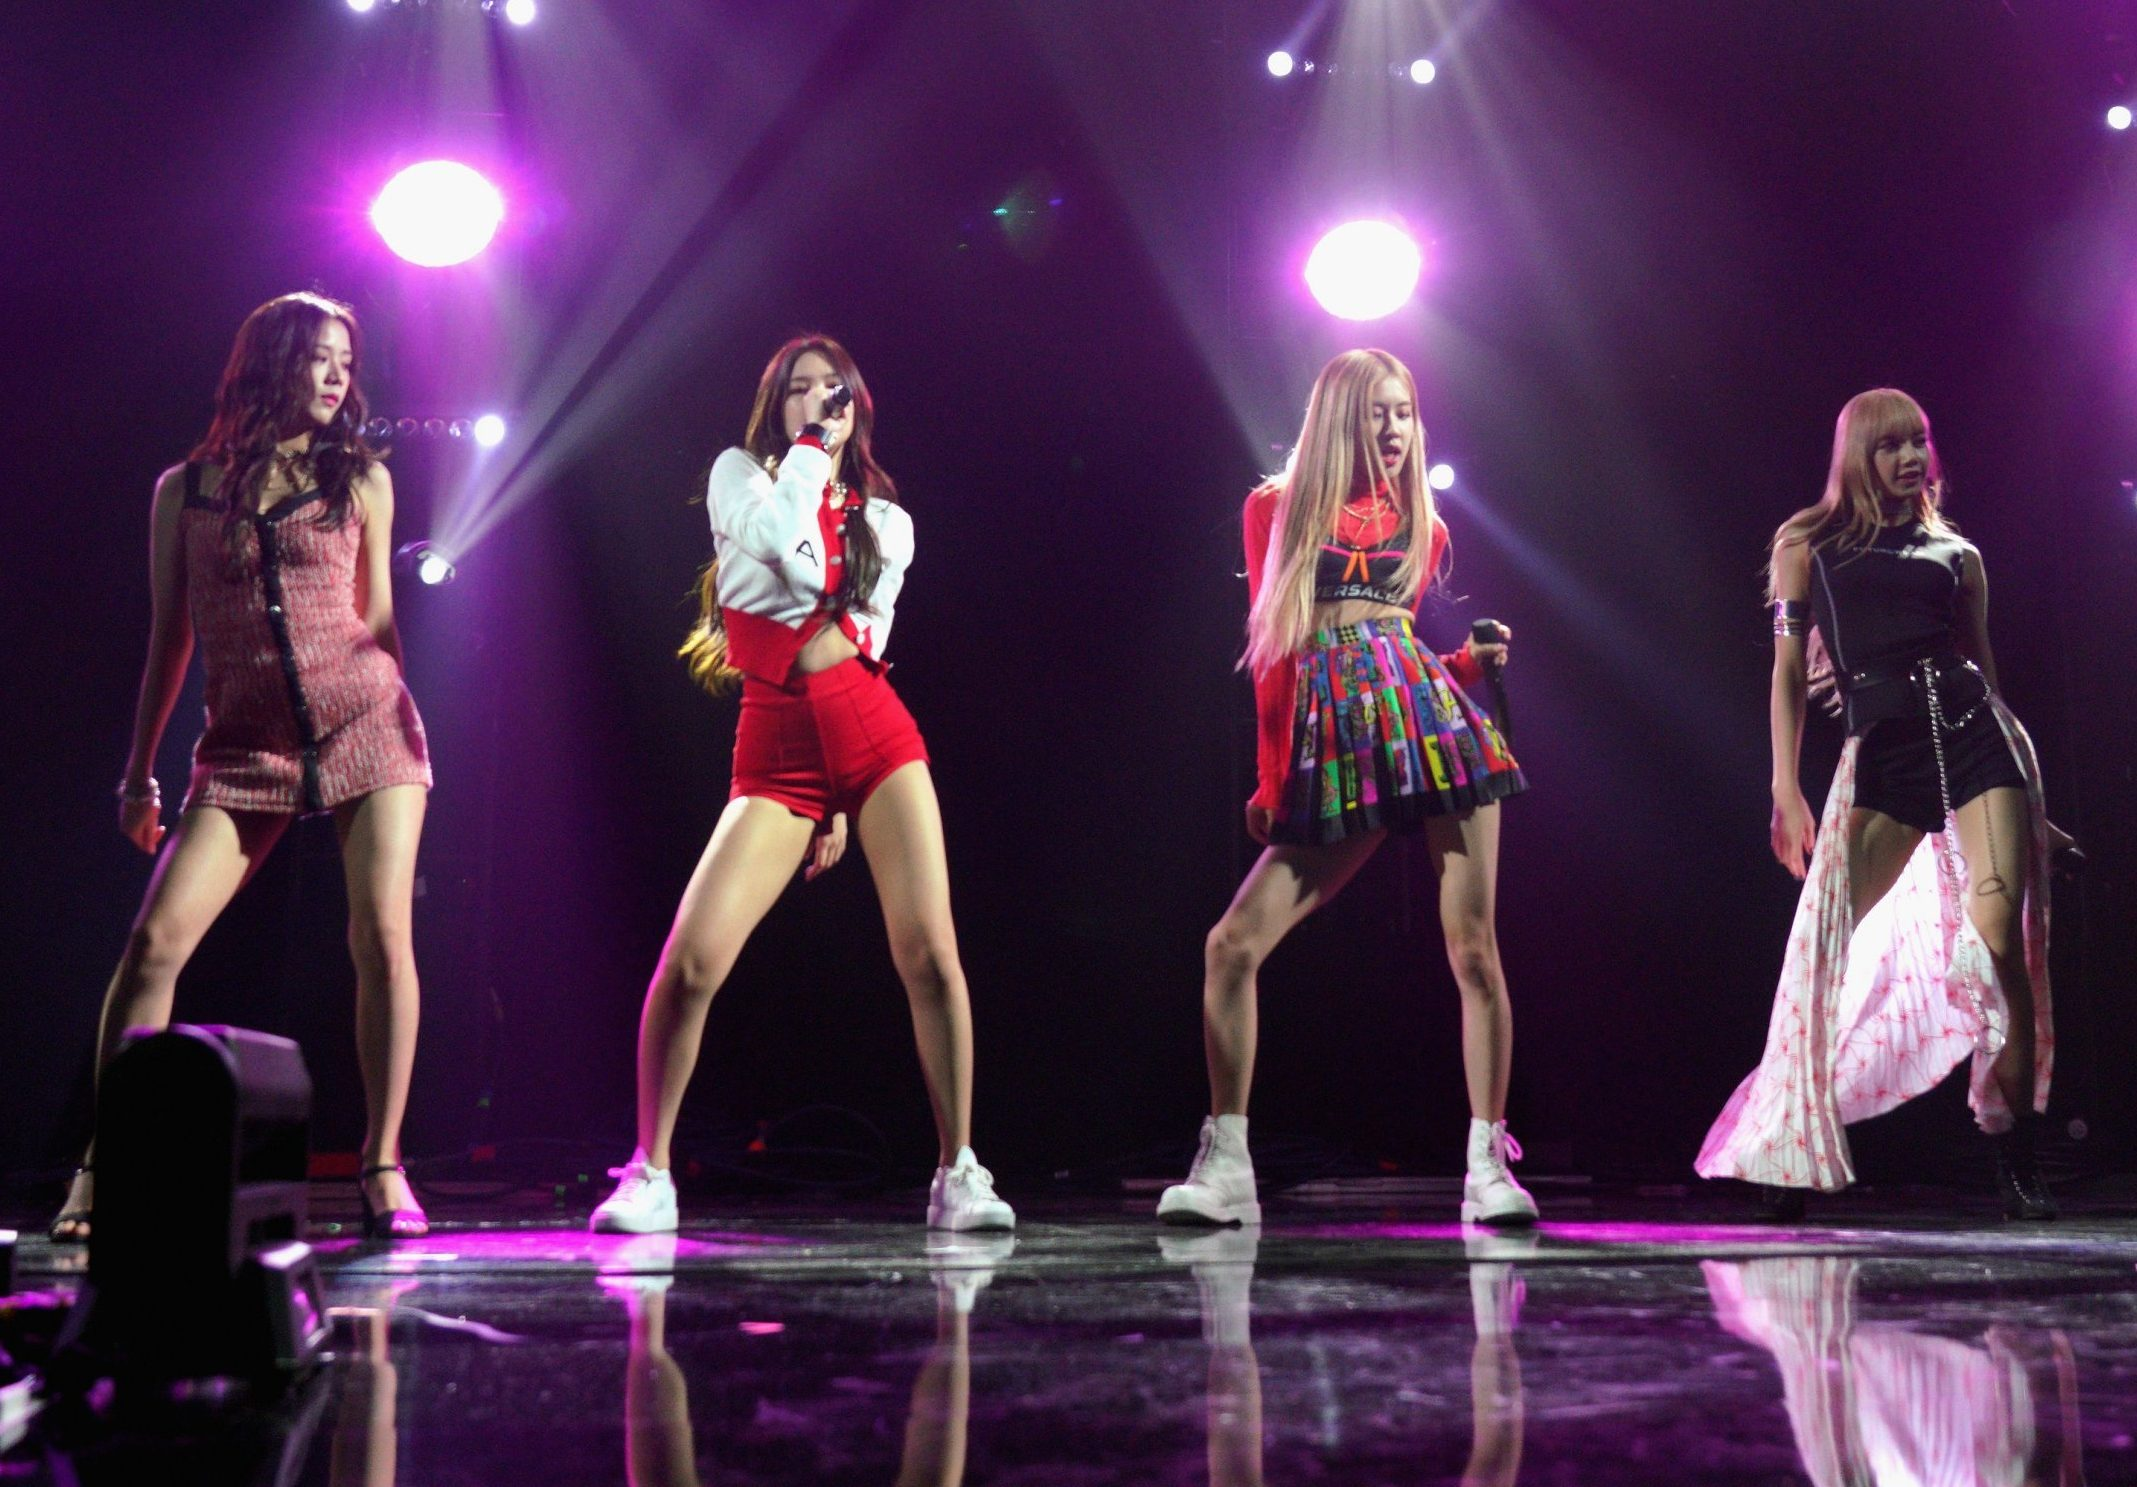 BLACKPINK could be releasing new single this month as they film new music video